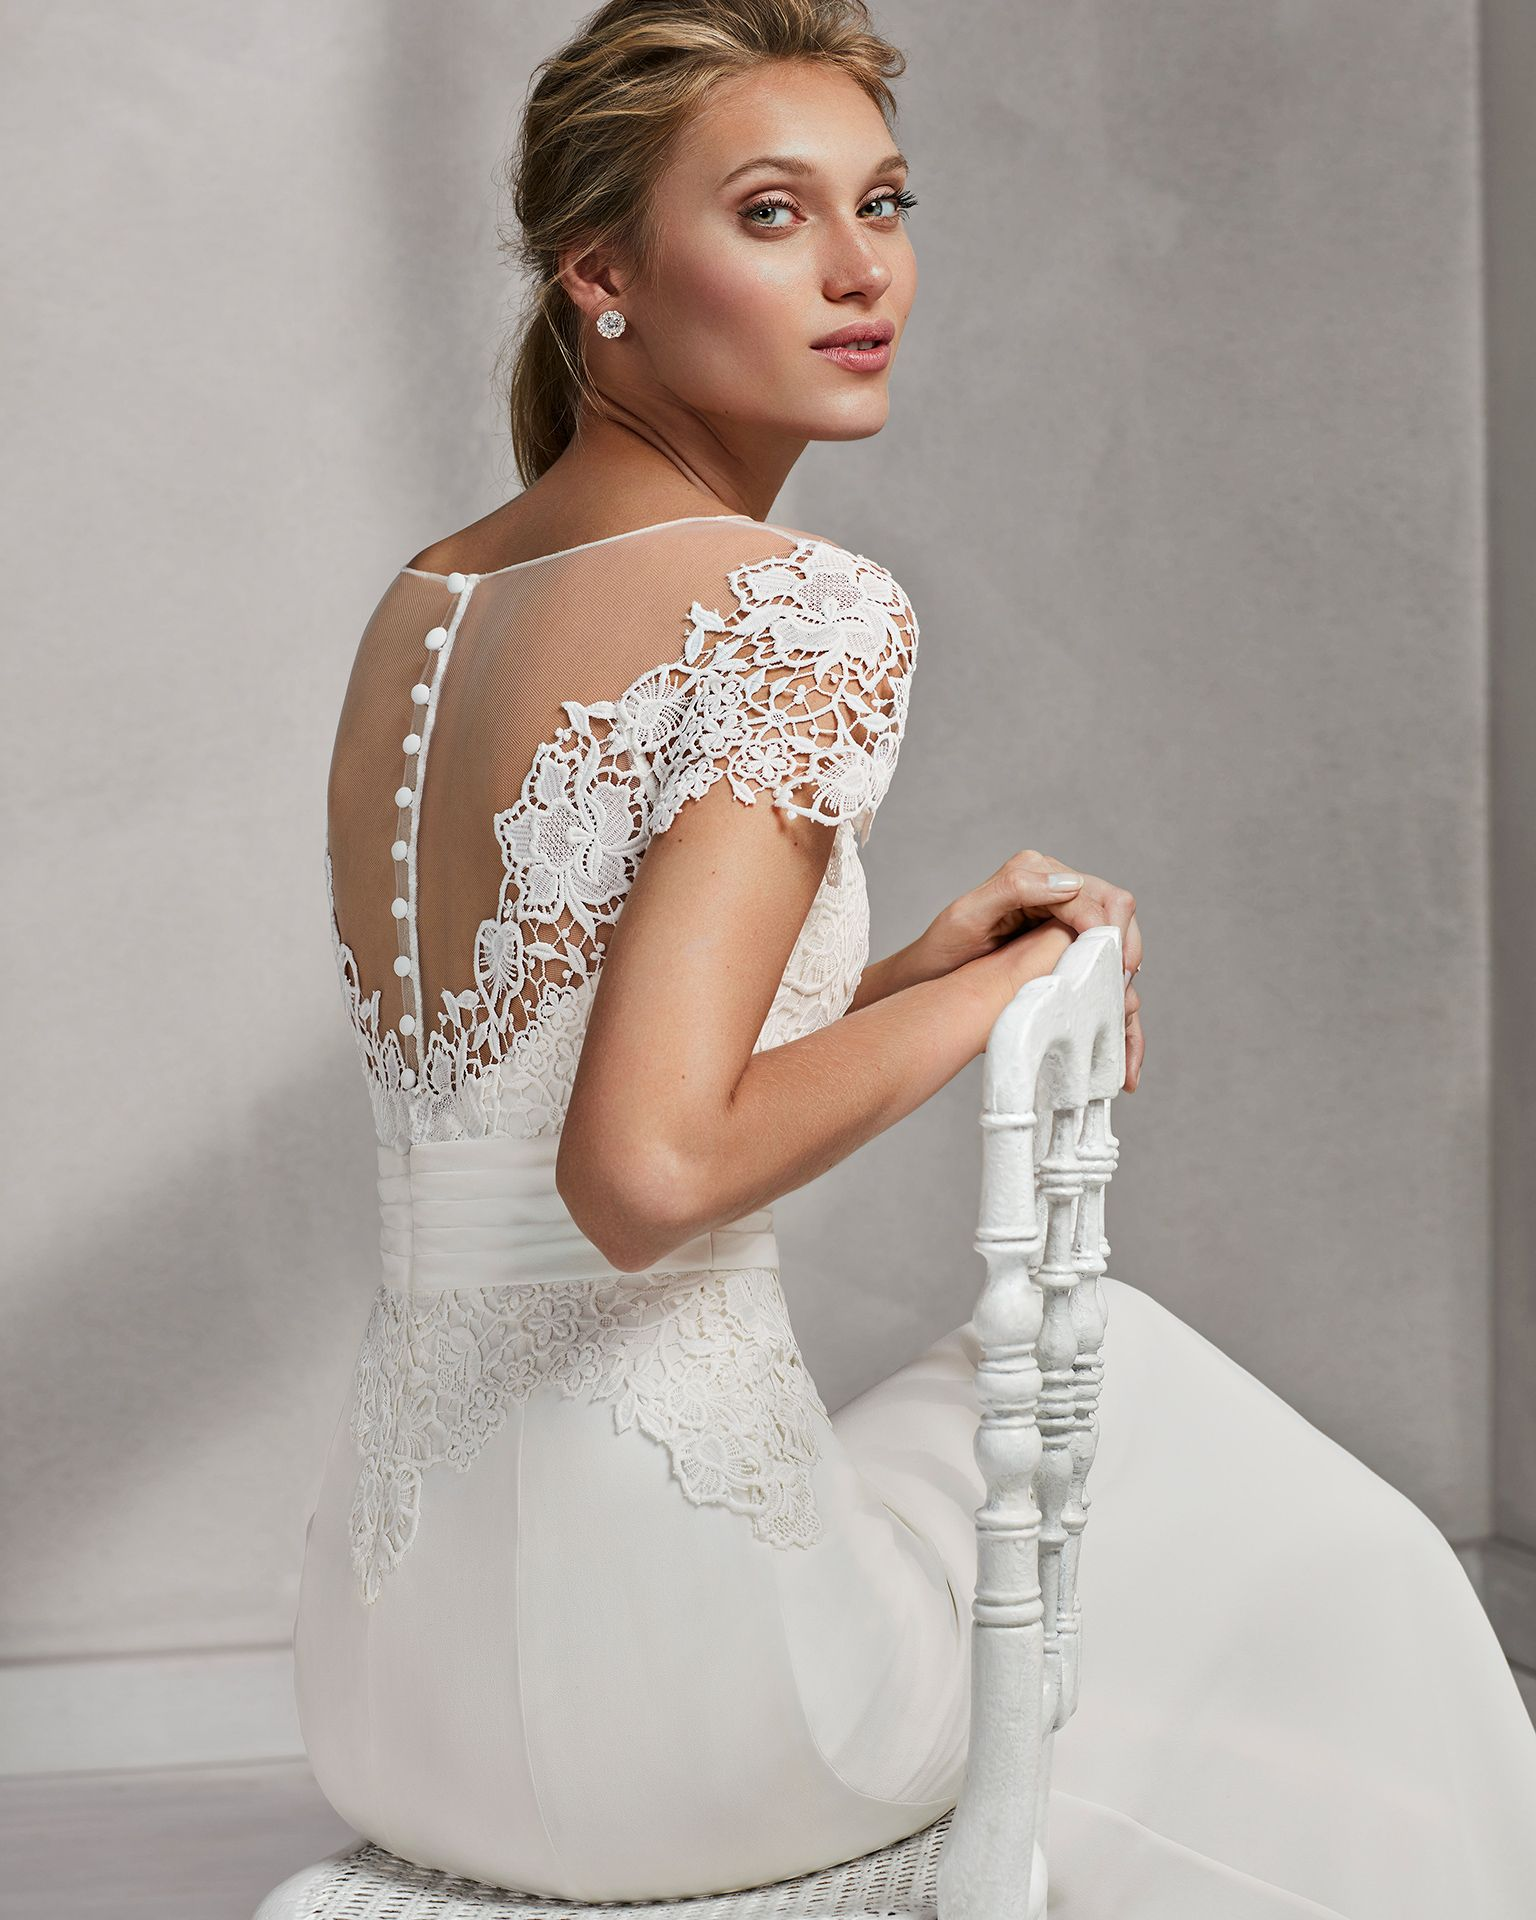 Mermaidstyle crepe georgette and guipure lace wedding dress with